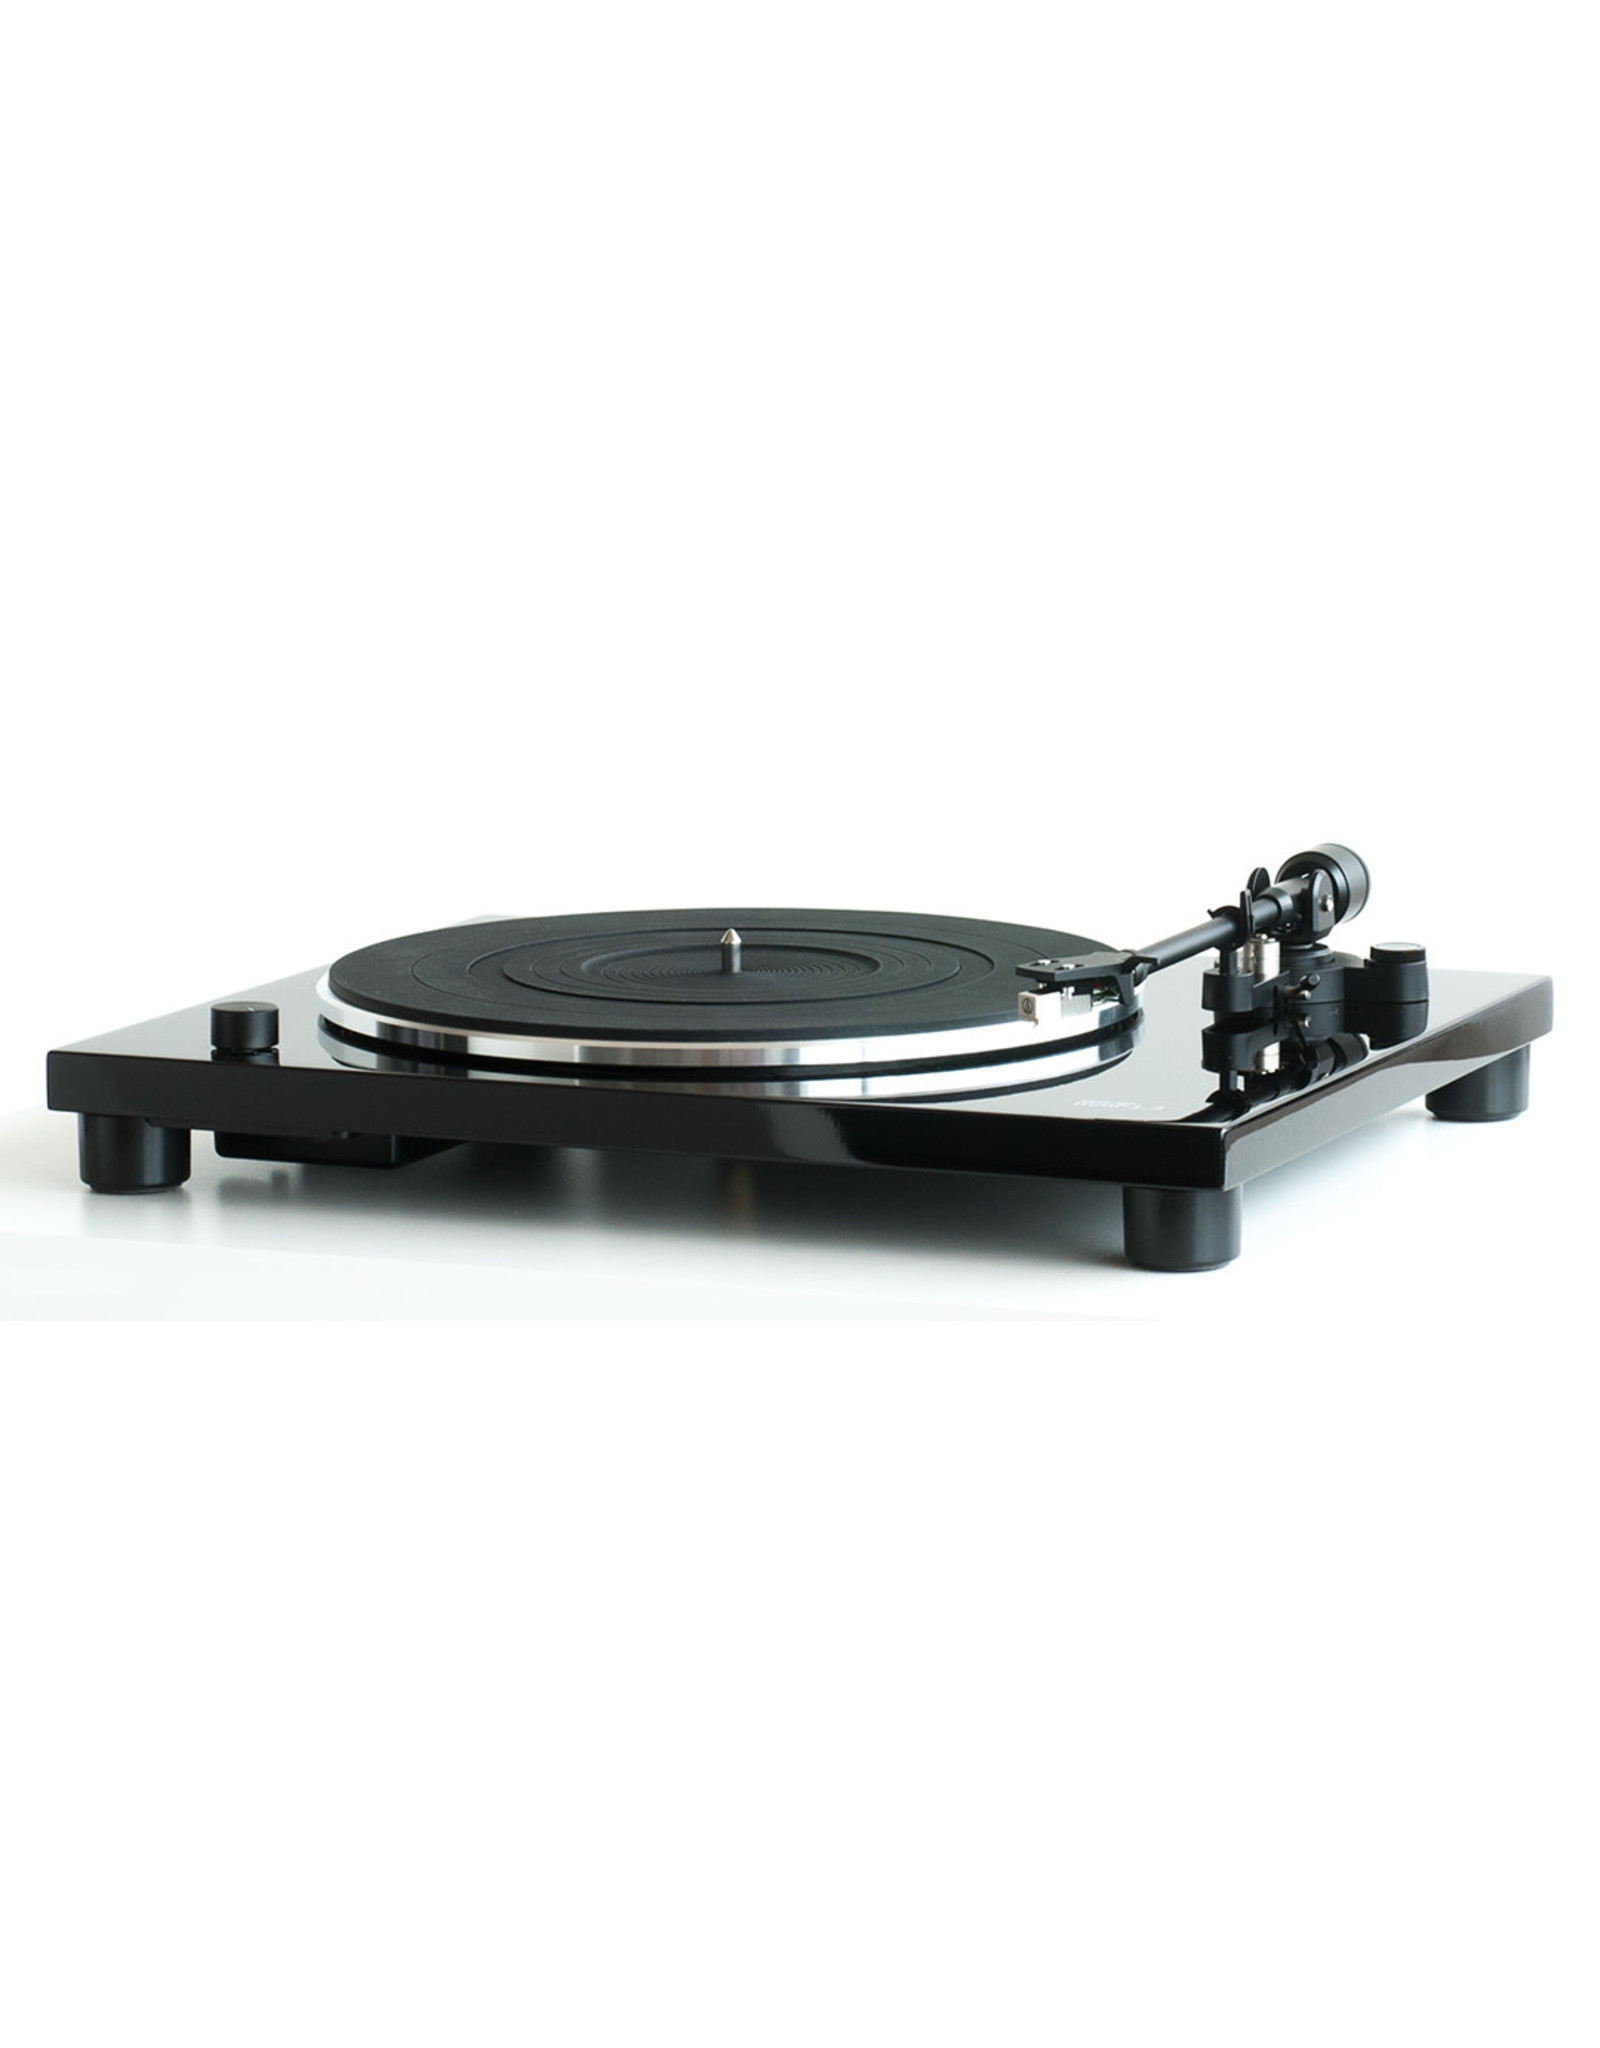 Music Hall Music Hall MMF-1.3 Turntable